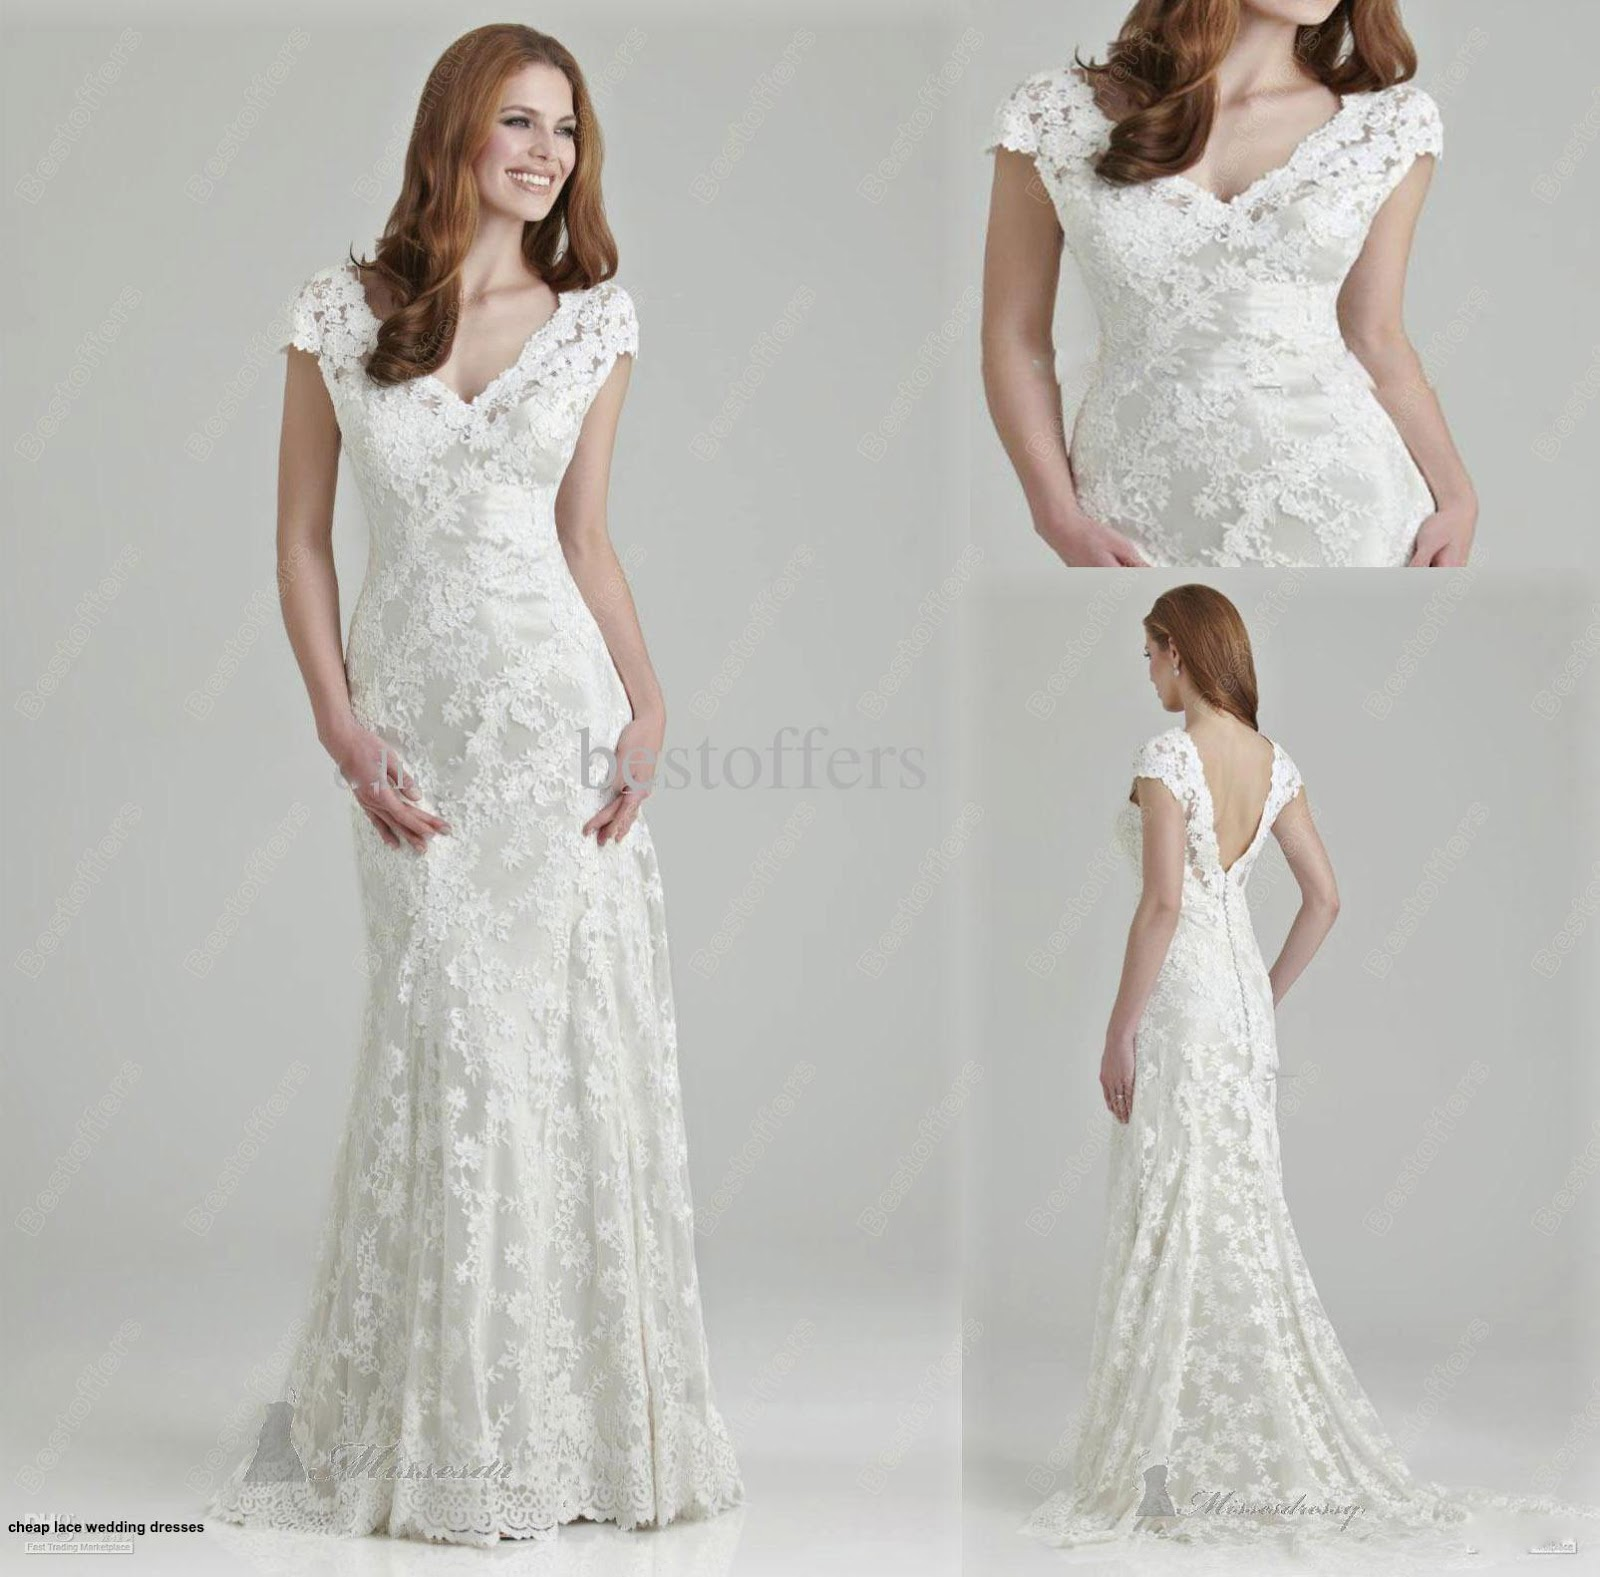 Cheap Lace Wedding Dresses Review 2015